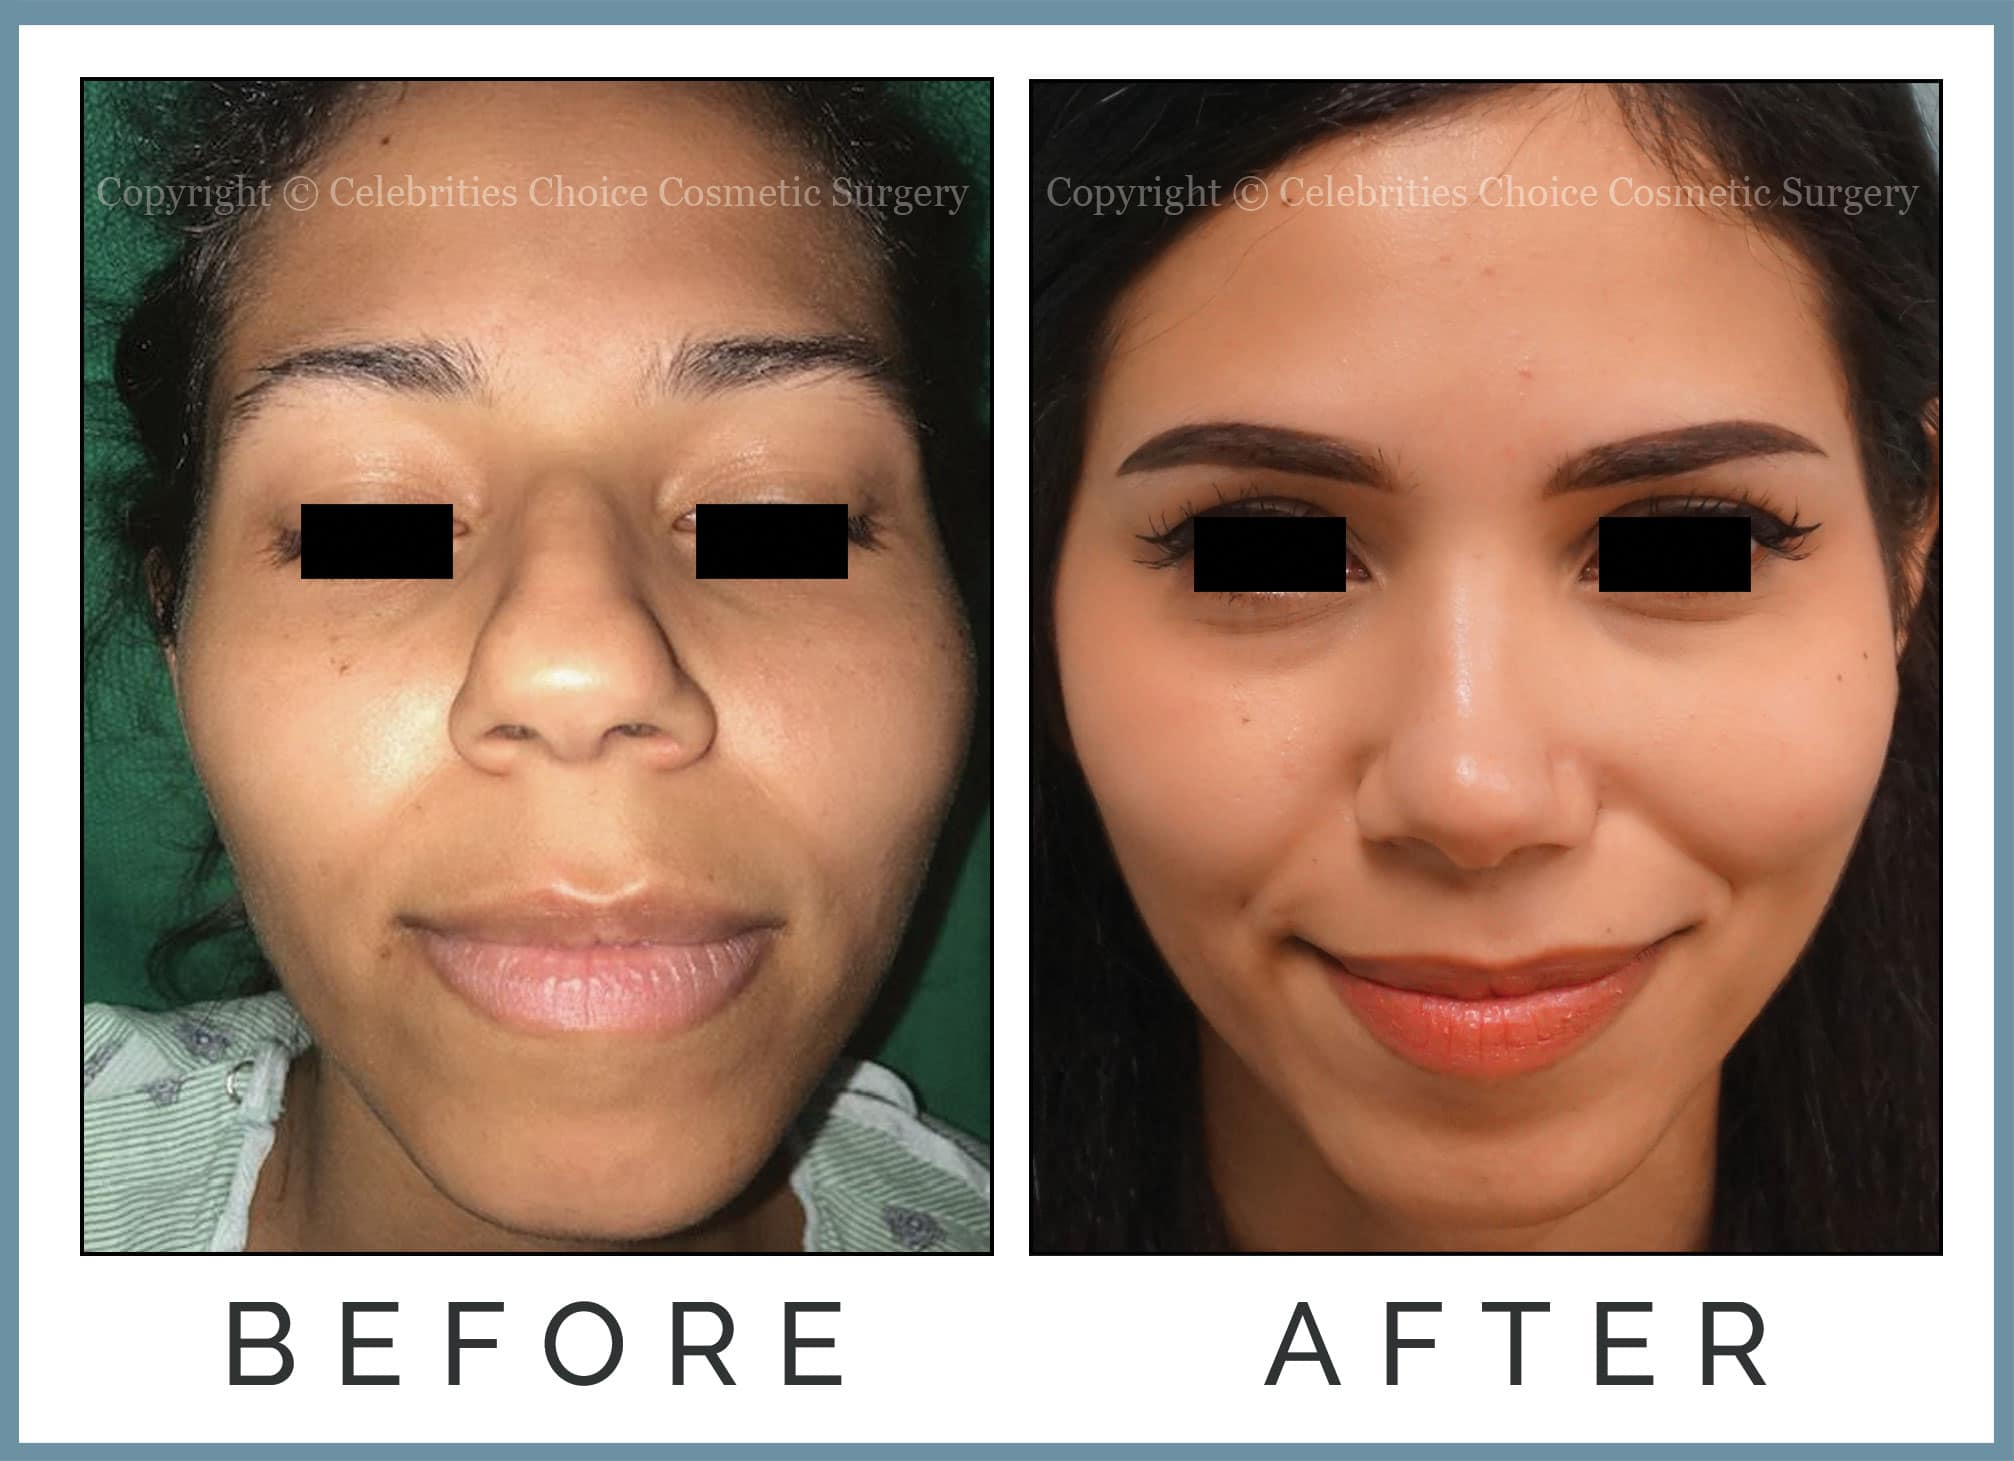 Reduction Rhinoplasty performed through a closed technique